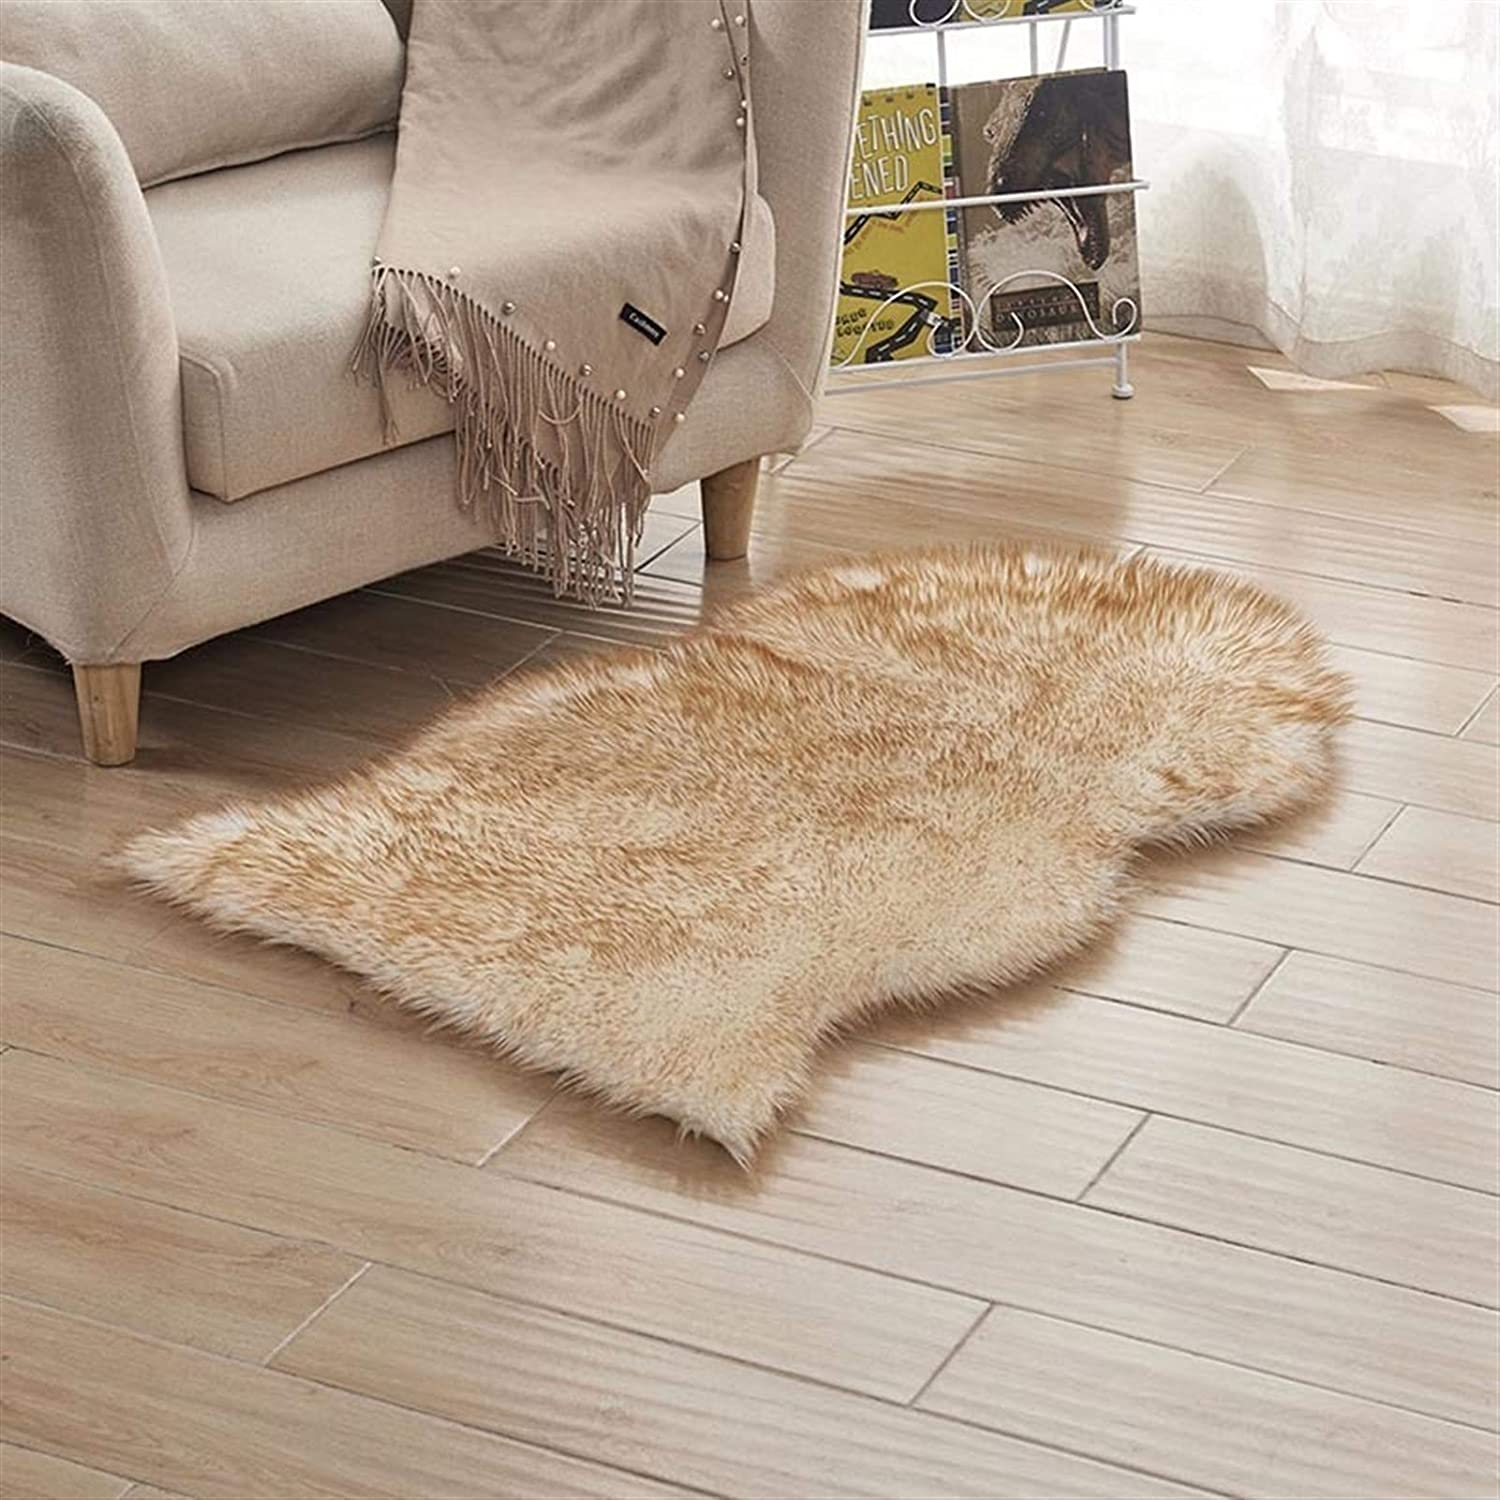 SHENYF-Hua High order Soft Faux Sheepskin Chair Popular shop is the lowest price challenge Seat Shaggy Pad Plain Cover